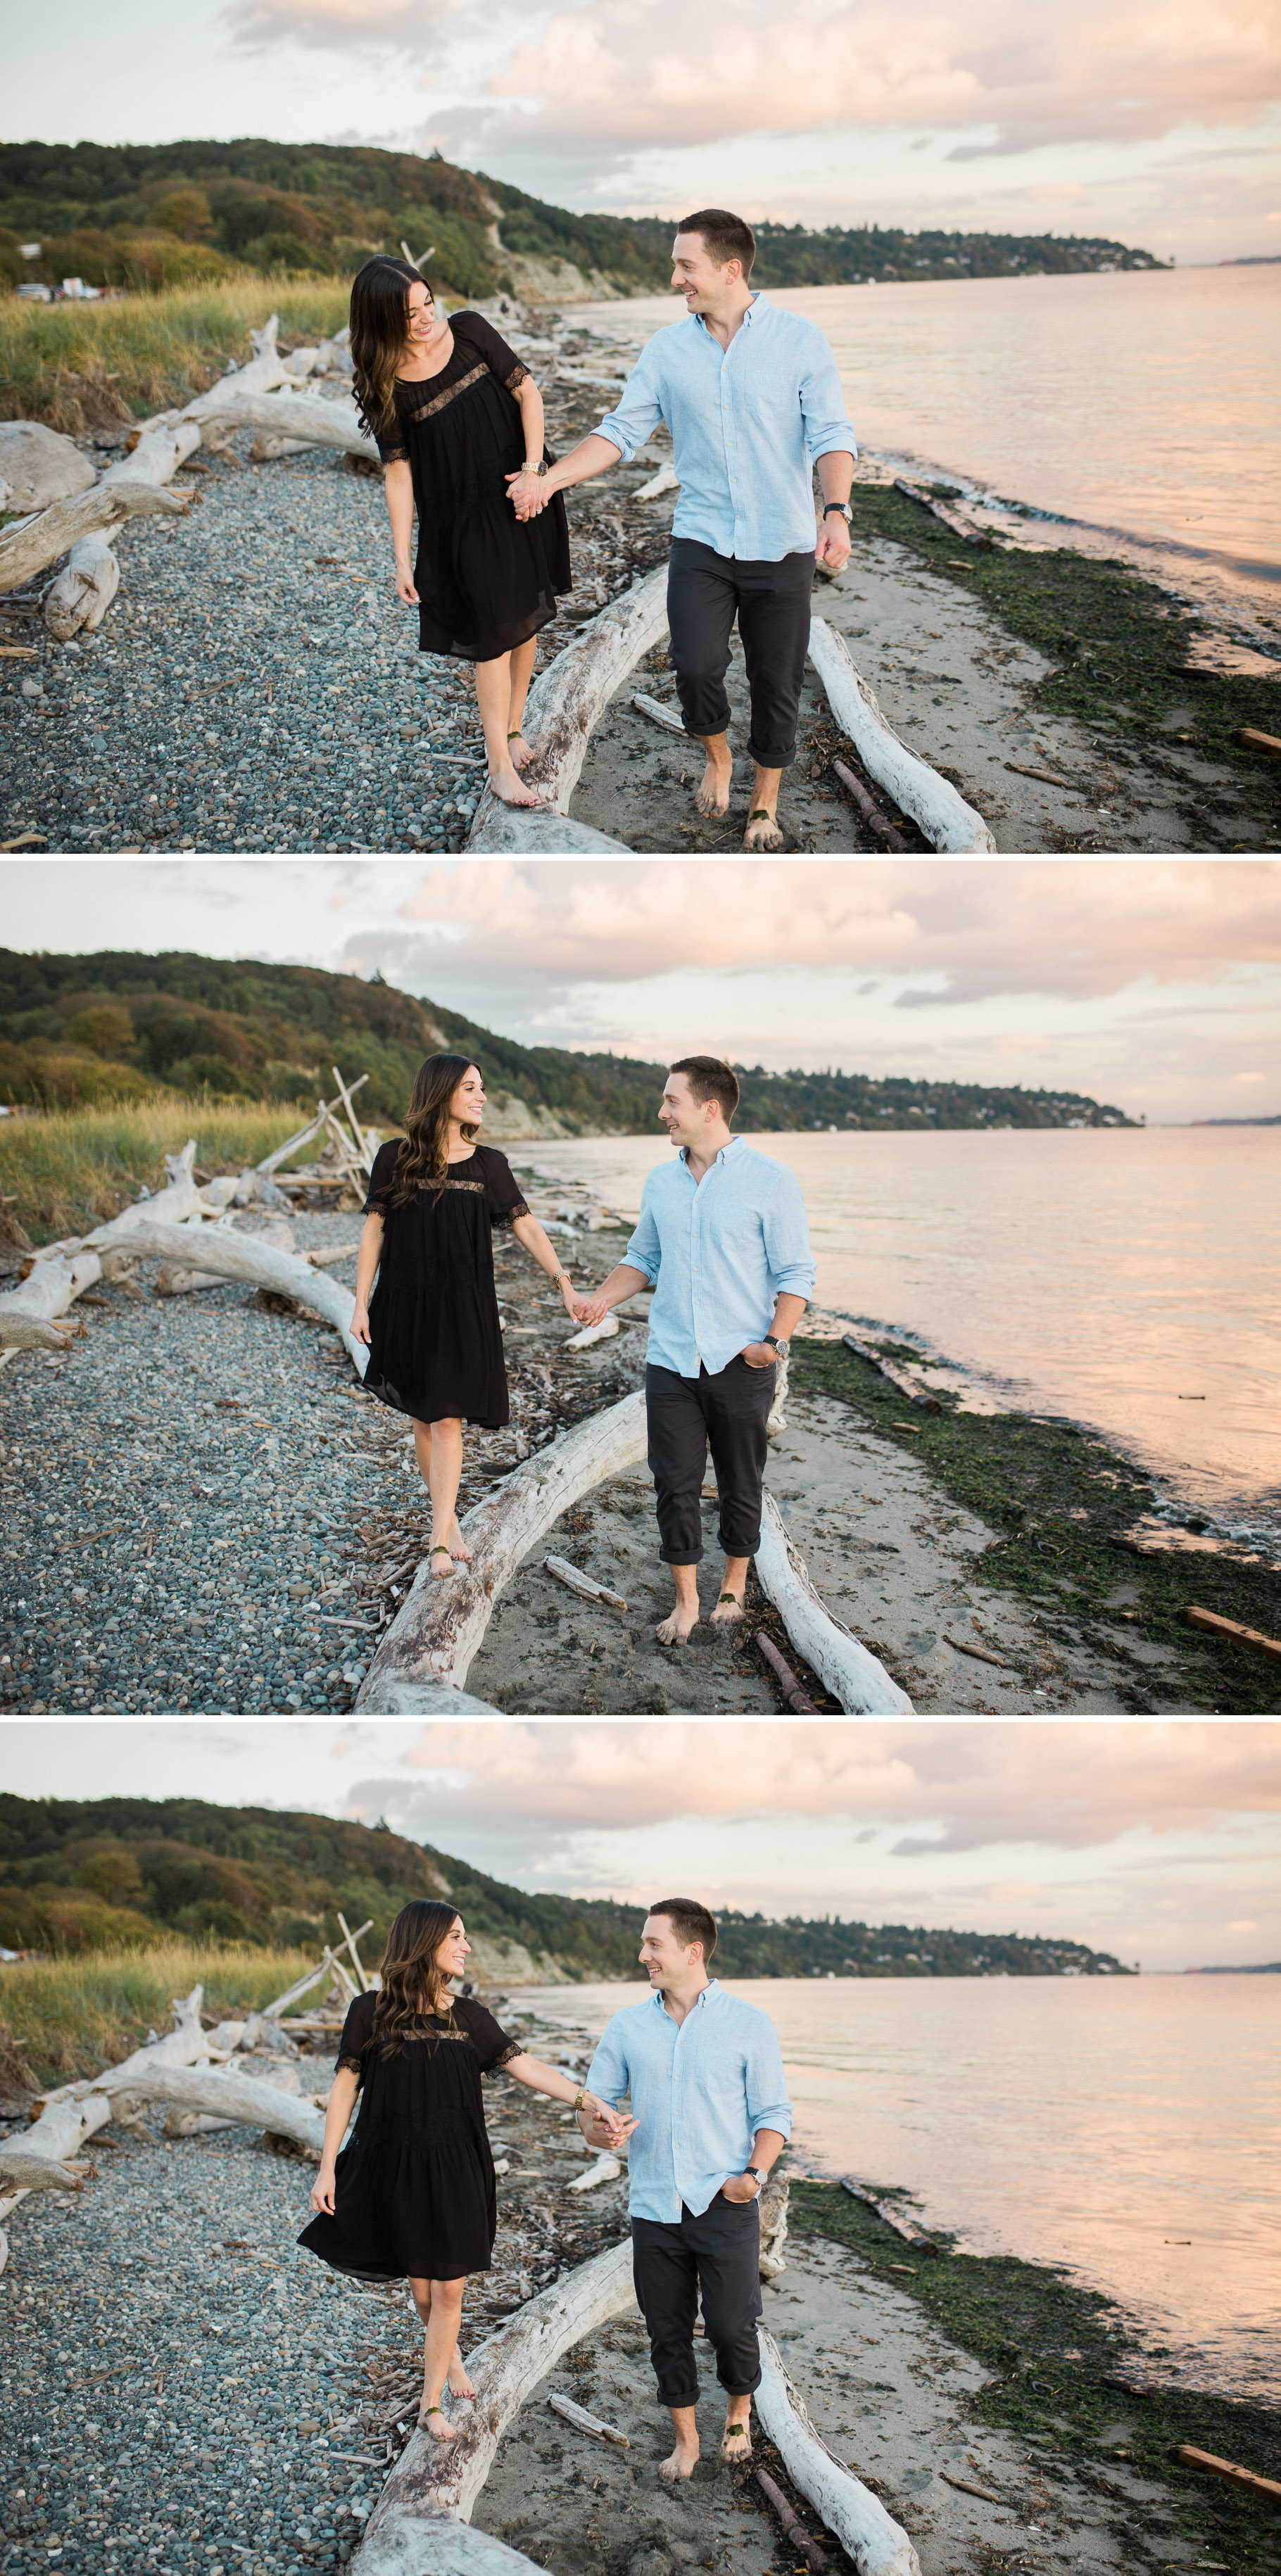 Discovery-Park-Seattle-Engagment-Photographer-Wedding-Photography-by-Betty-Elaine_0015